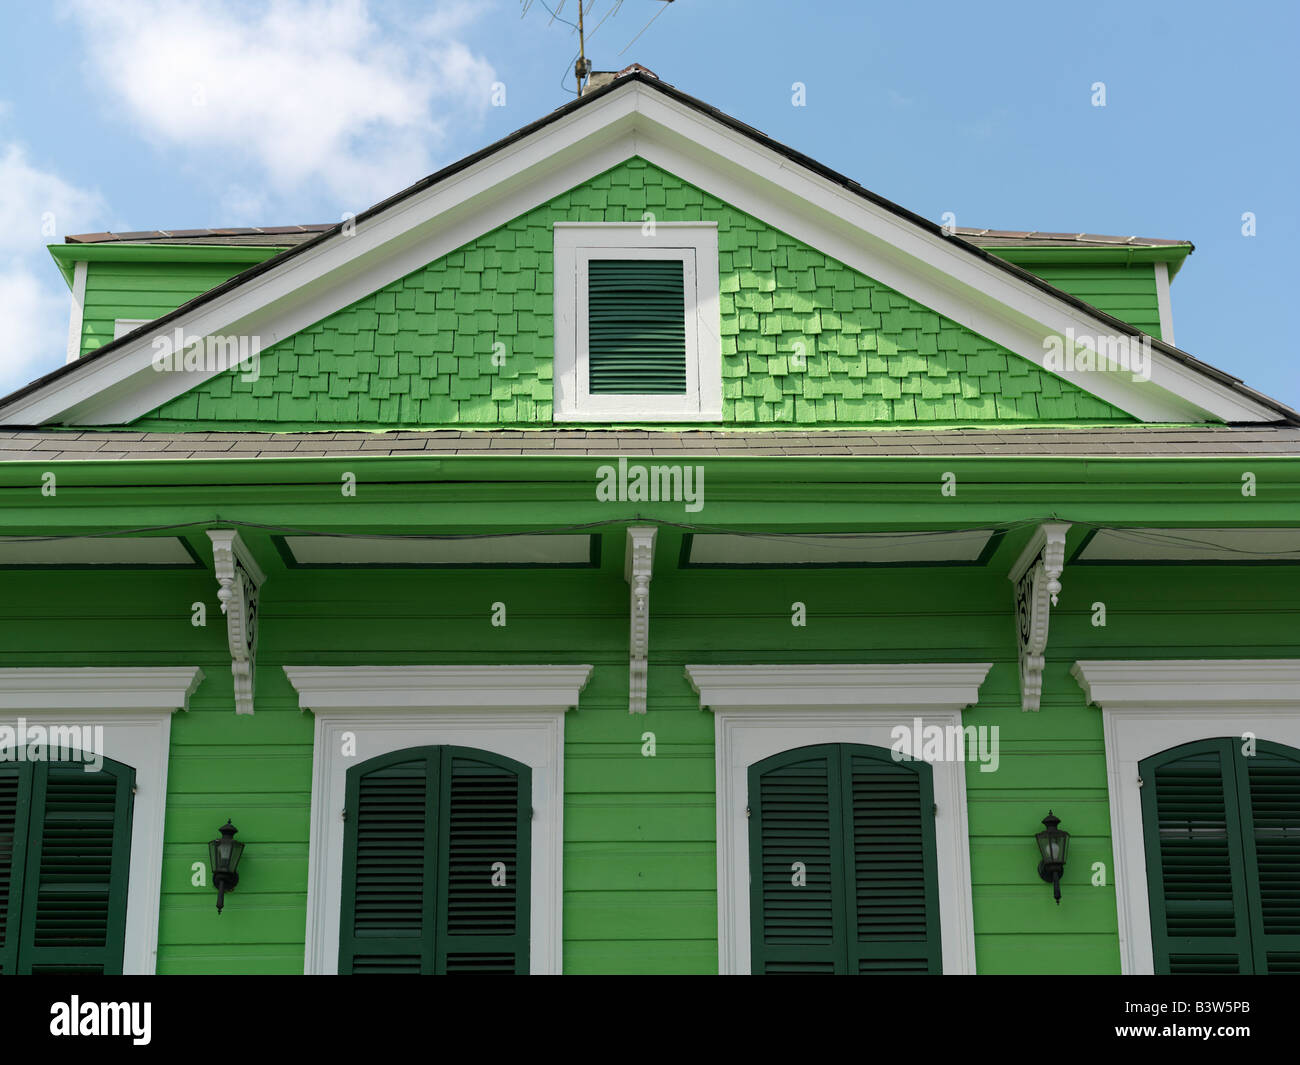 USA,Louisiana,New Orleans,French Quarter,French Quarter Creole cottage - Stock Image